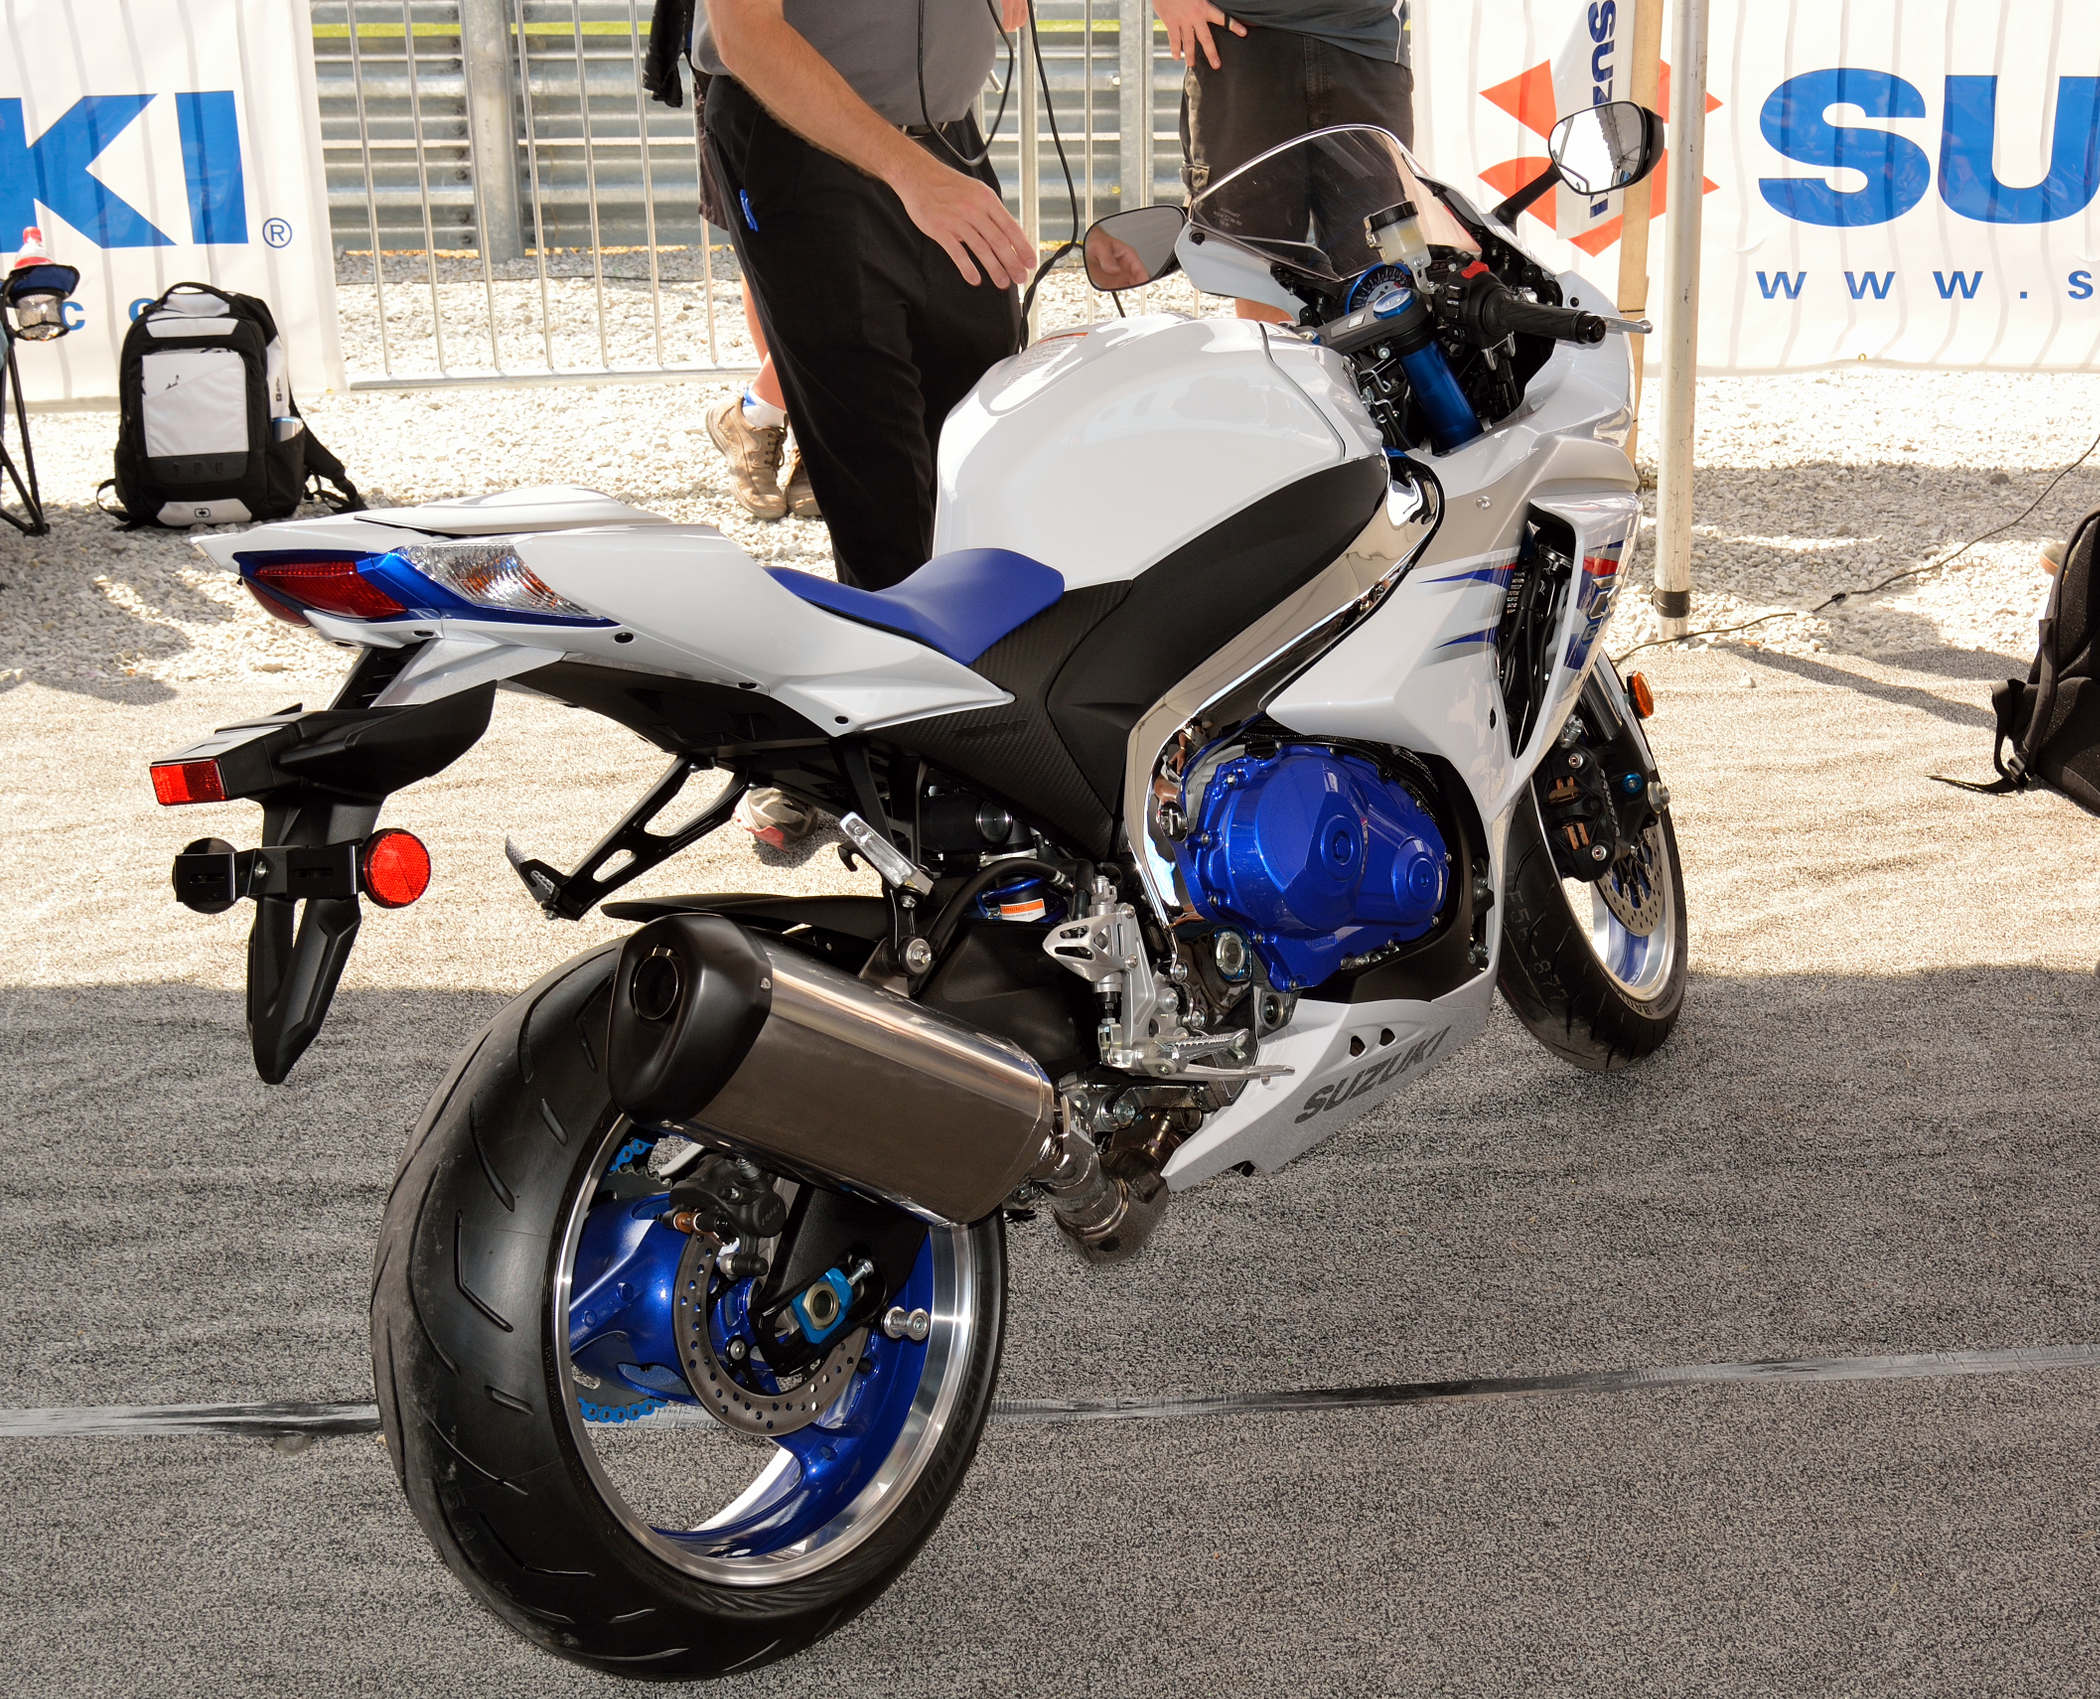 2014 Gsxr 1000 1000 with a new model